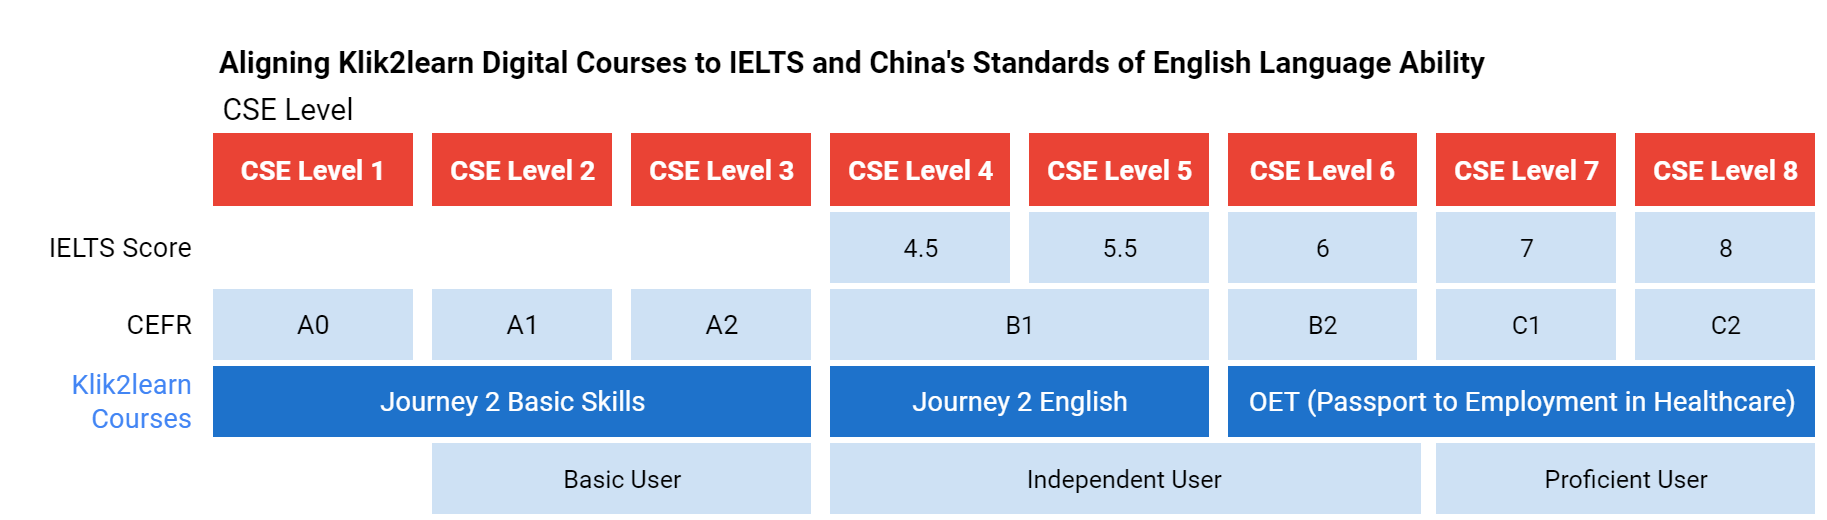 CSE English Levels Aligned to Klik2learn Online Course